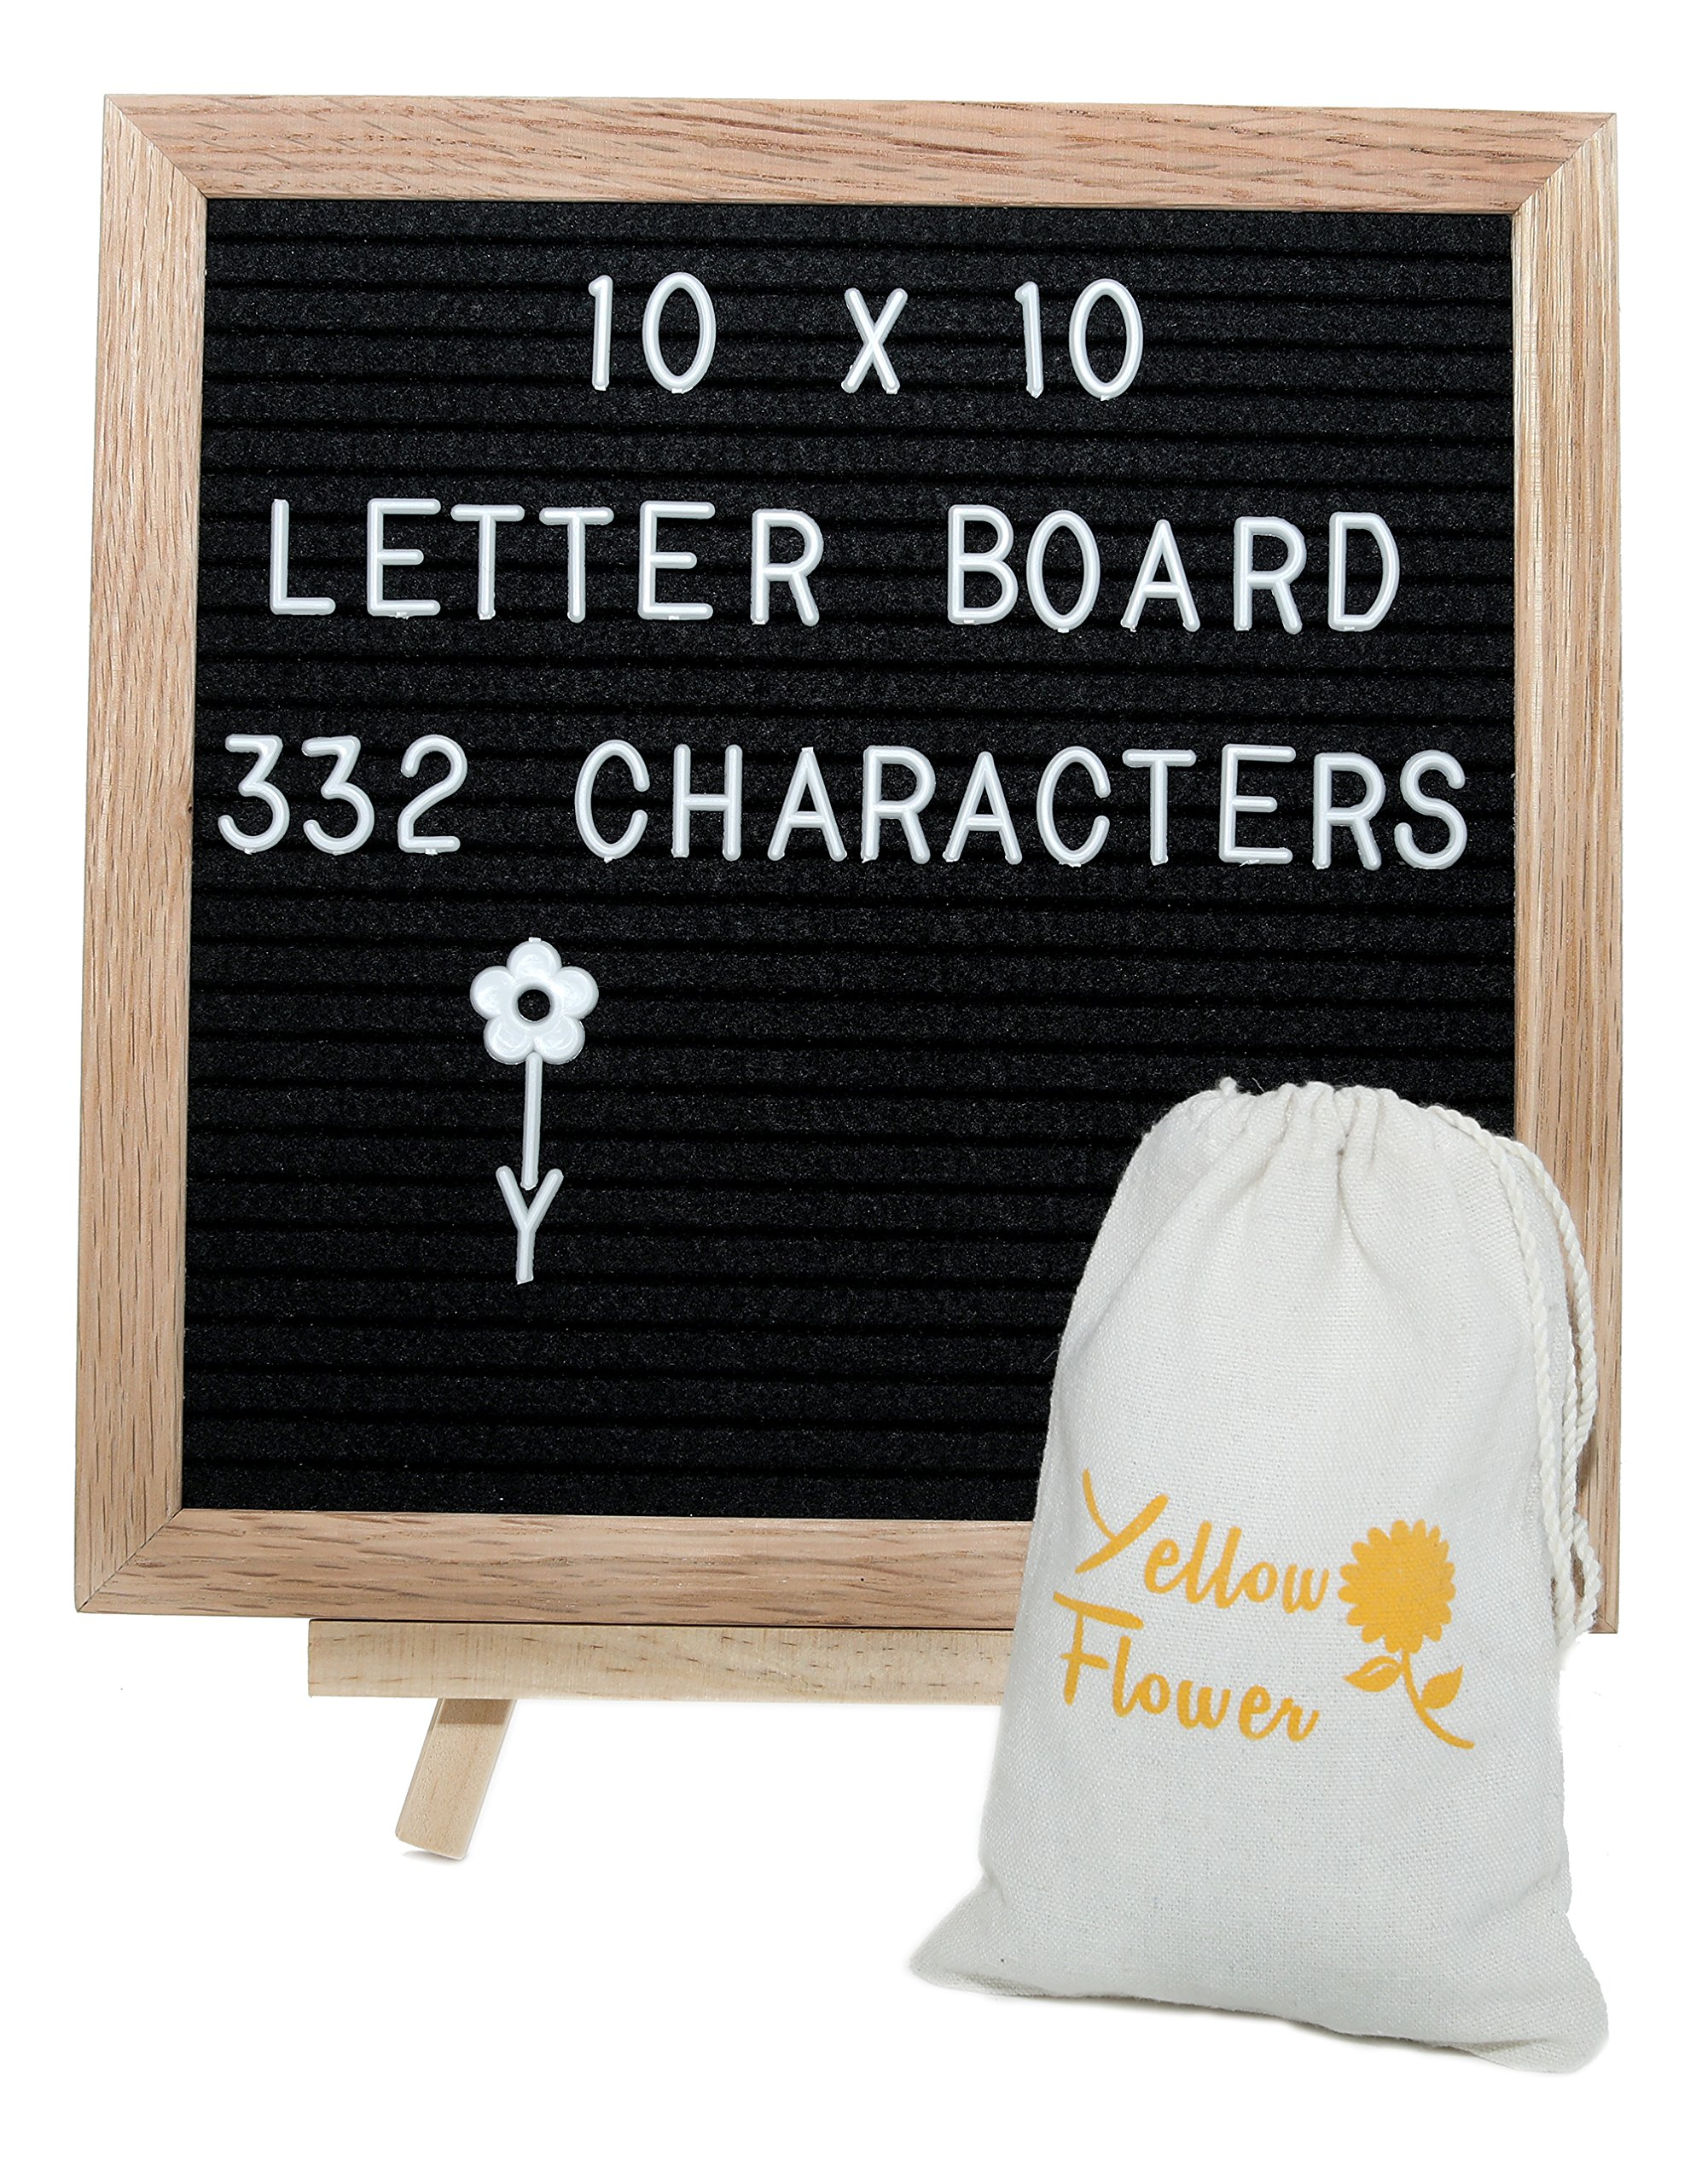 Black Felt Letter Board 10X10 inches with 332 Plastic Changeable Letters Numbers and Characters, Canvas Bag Wooden Adjustable Easel and a Wall Mount- Perfect for Classroom Decorations and Gifts